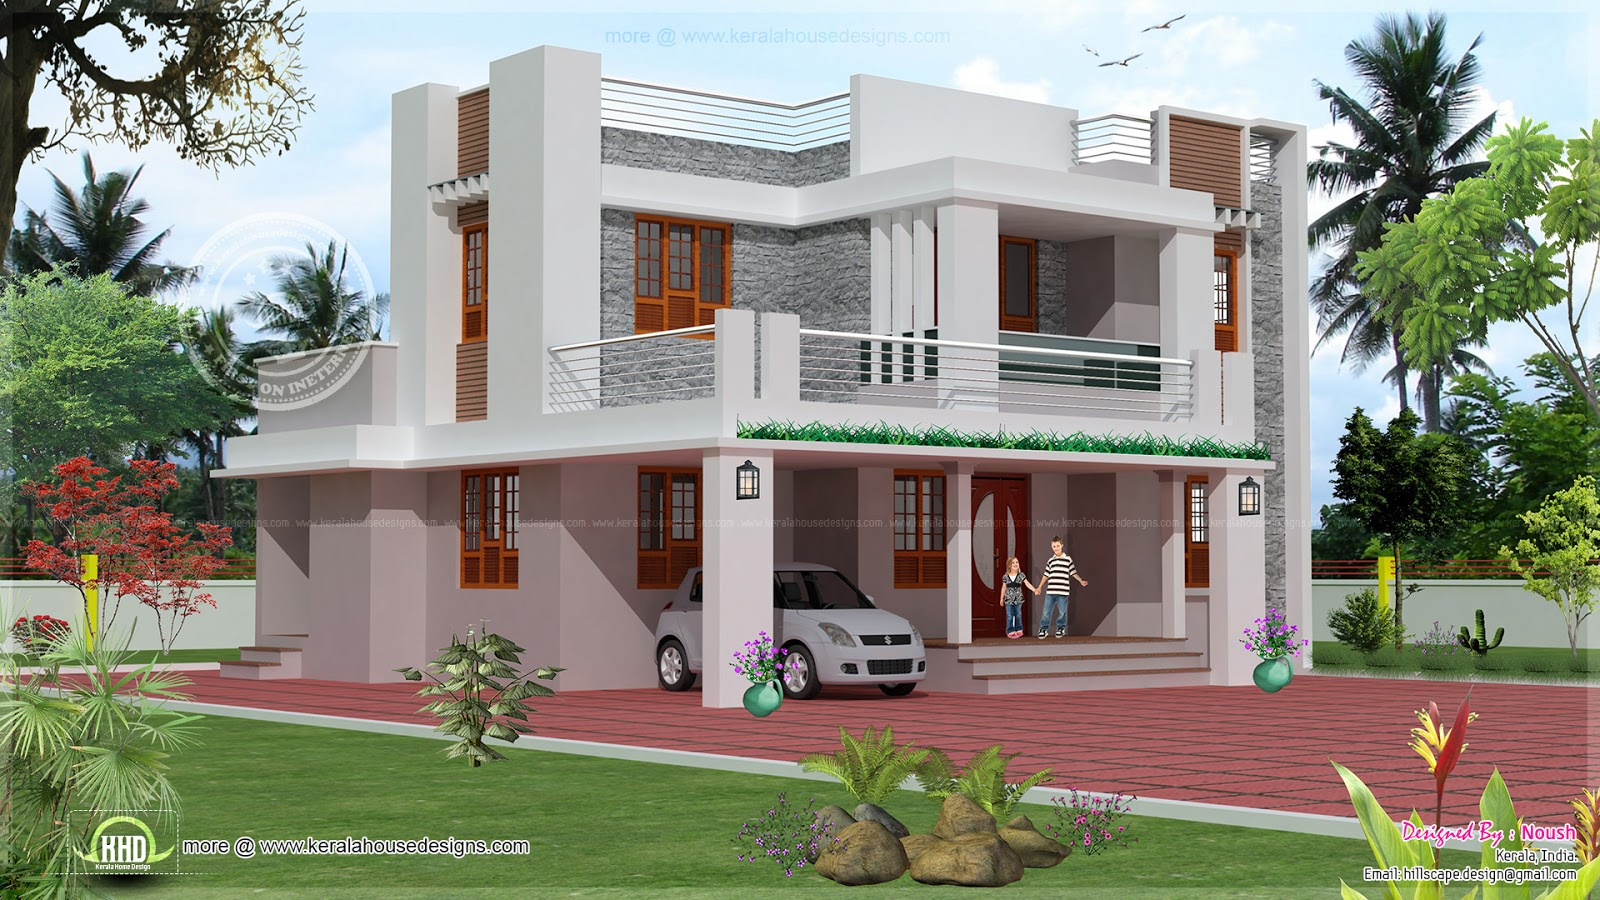 4 bedroom 2 story house exterior design home kerala plans for Two story bedroom